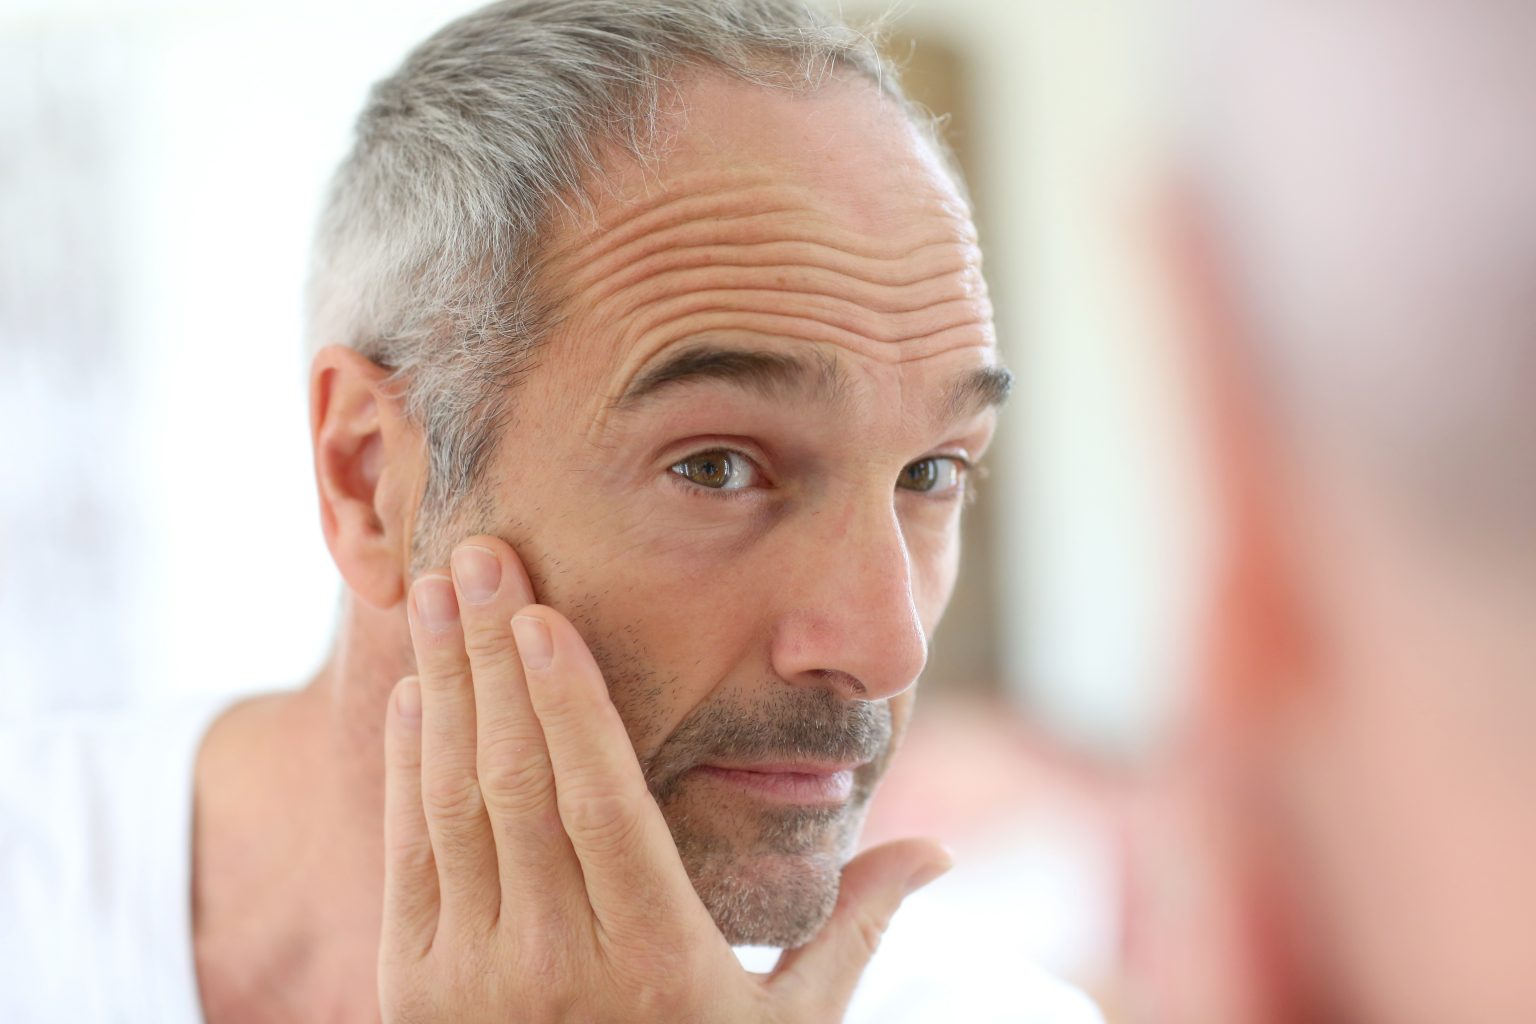 Skin treatments for men